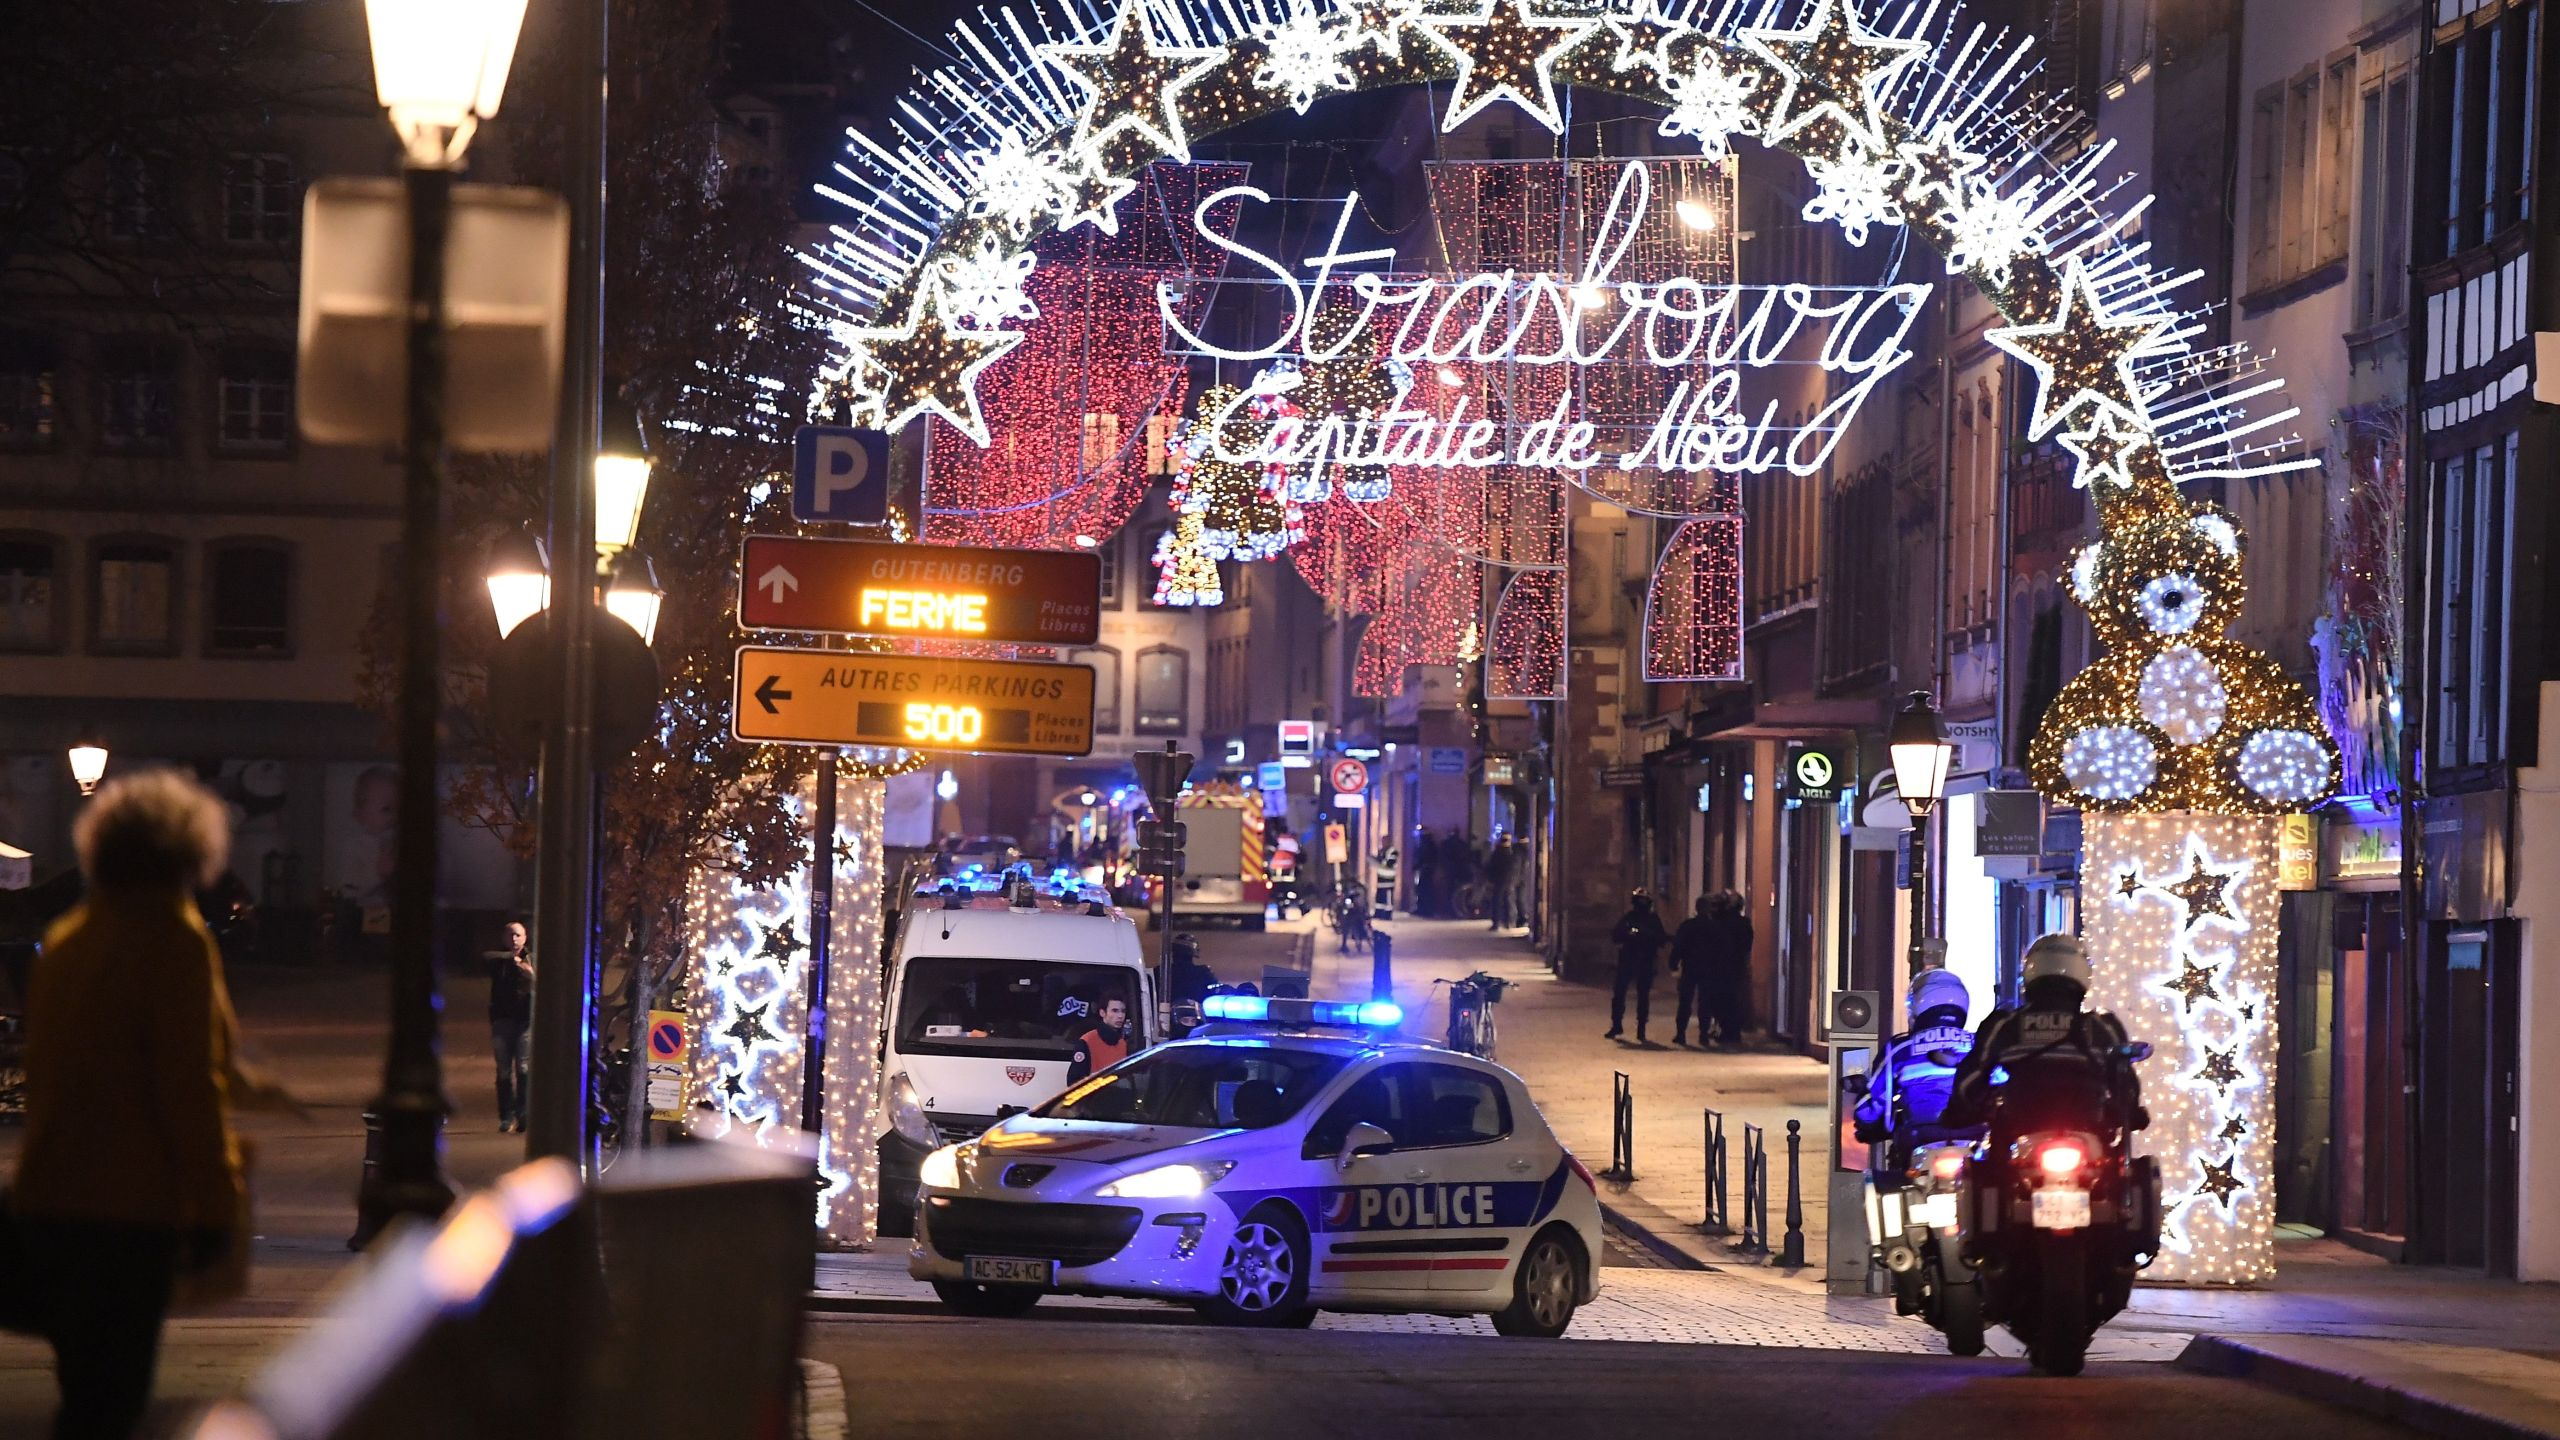 A police car is seen in Strasbourg, eastern France after a shooting on Dec 11, 2018. (Credit: FREDERICK FLORIN/AFP/Getty Images)